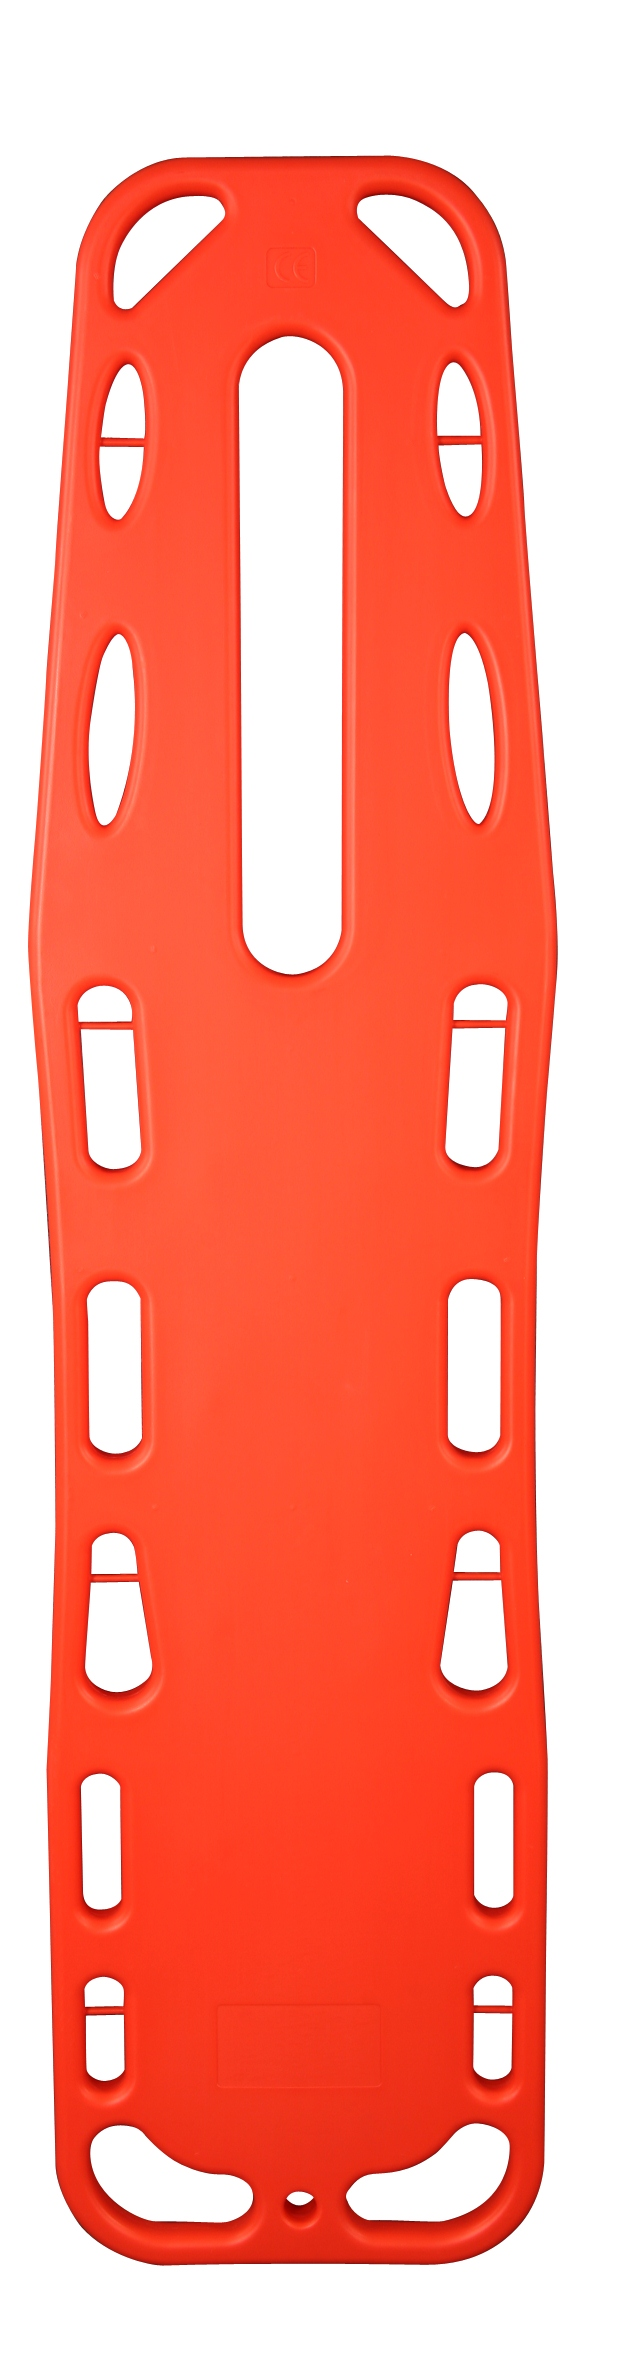 spine board ydc 7a1 rescue evacuation